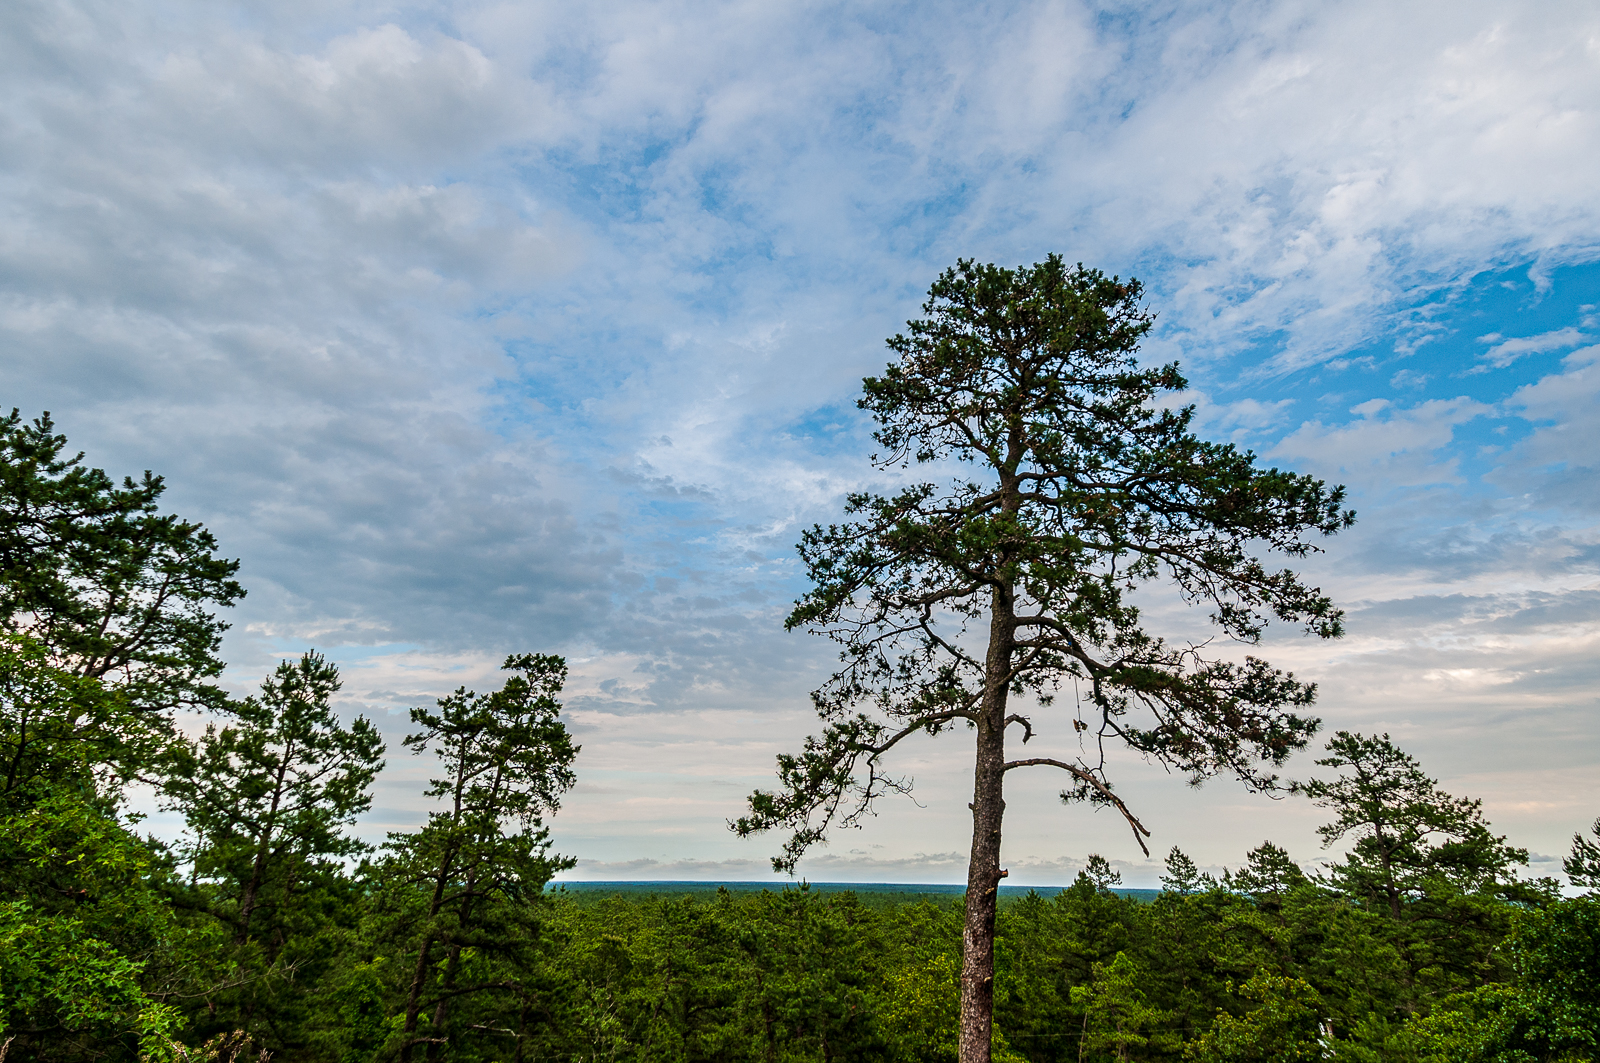 https://www.louisdallaraphotography.com/2012/12/28/view-of-the-pinelands-from-apple-pie-hill-tower